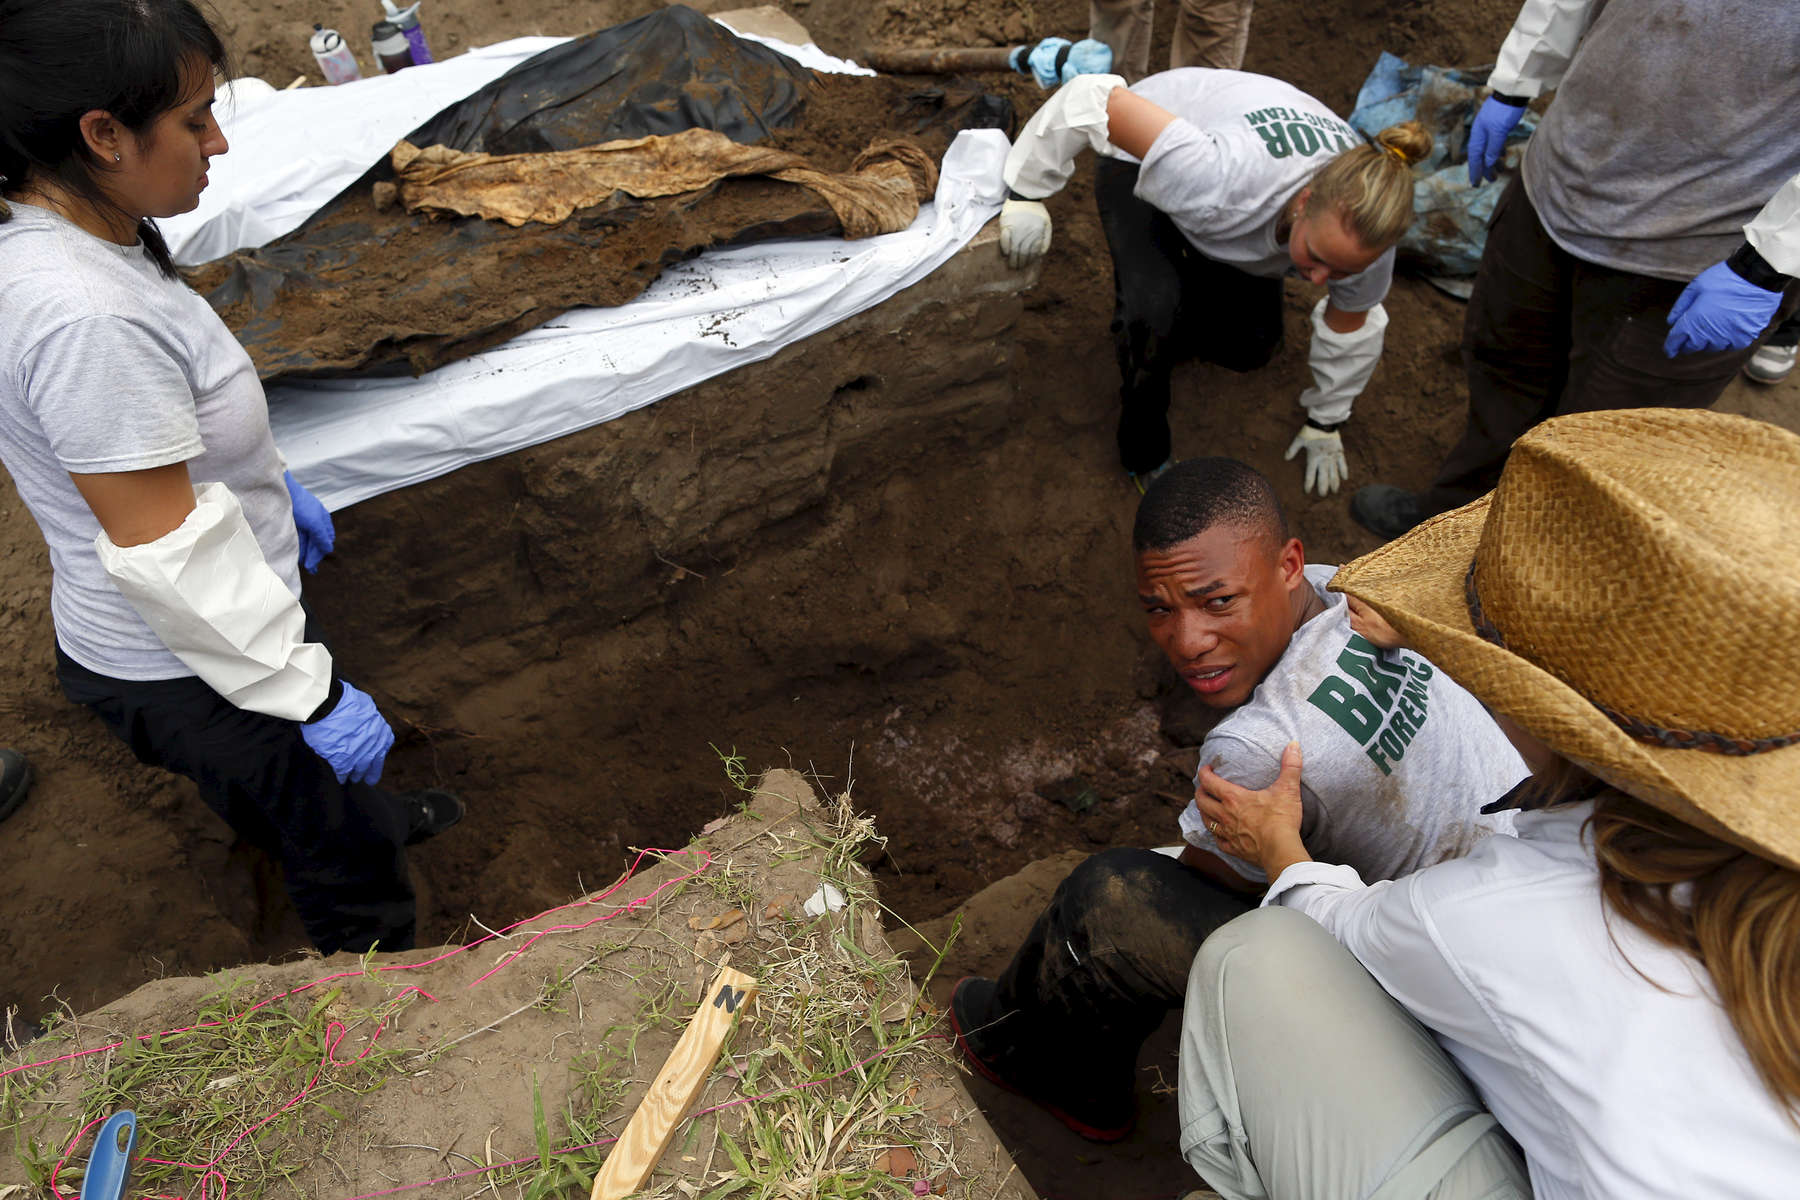 Xavier Colbert, 22, a Senior at Baylor (C) reacts as he sees another body underneath the one they just pulled out of a grave in Falfurrias, Texas June 10, 2014.